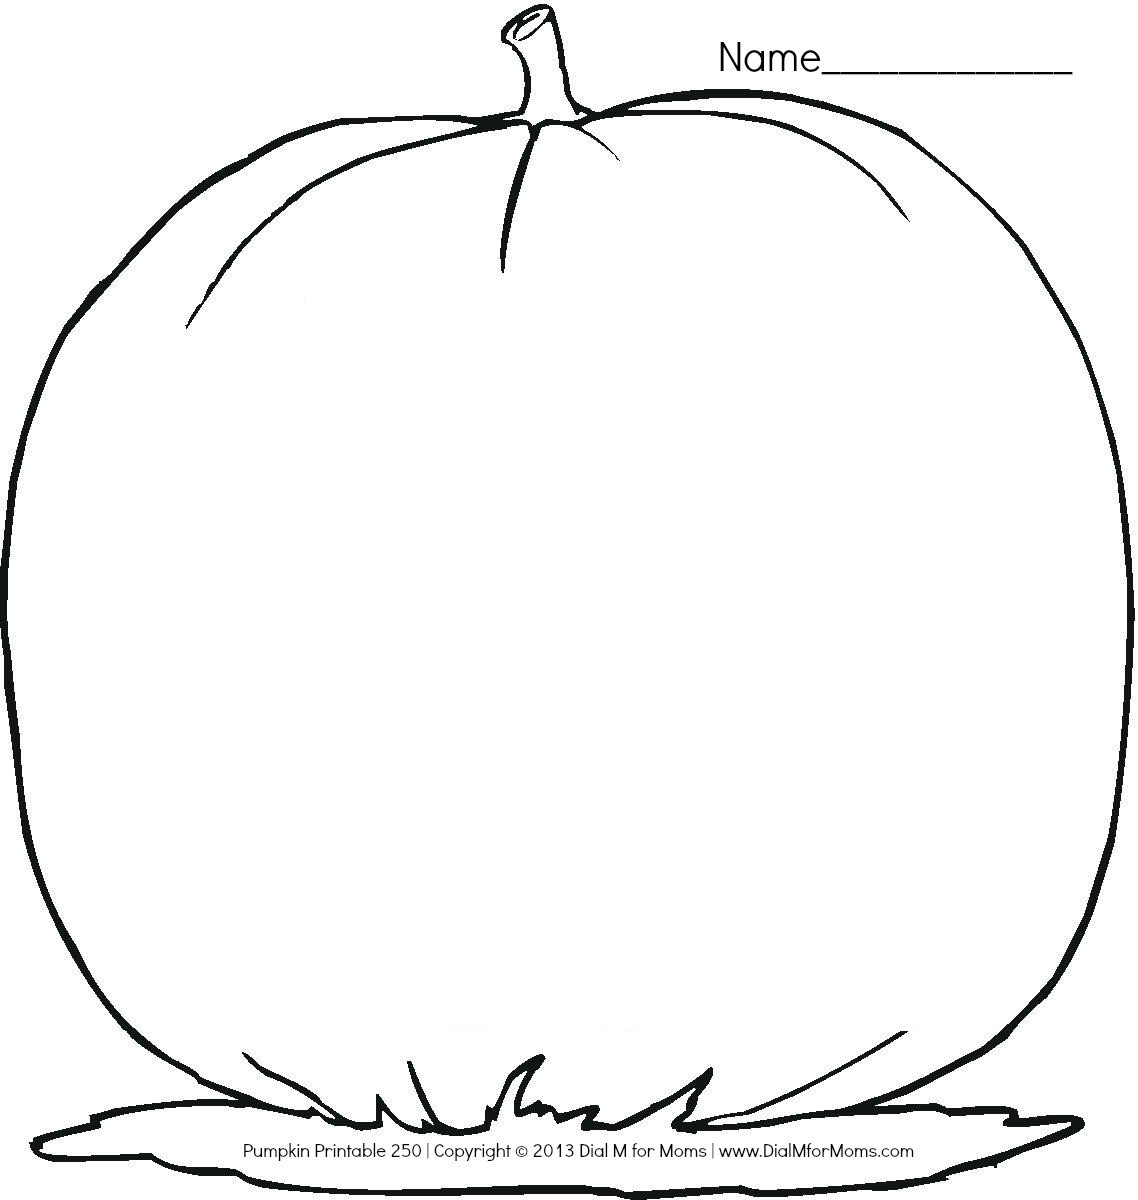 Best ideas about Blank Pumpkin Coloring Sheets For Kids . Save or Pin Blank Pumpkin Template Now.